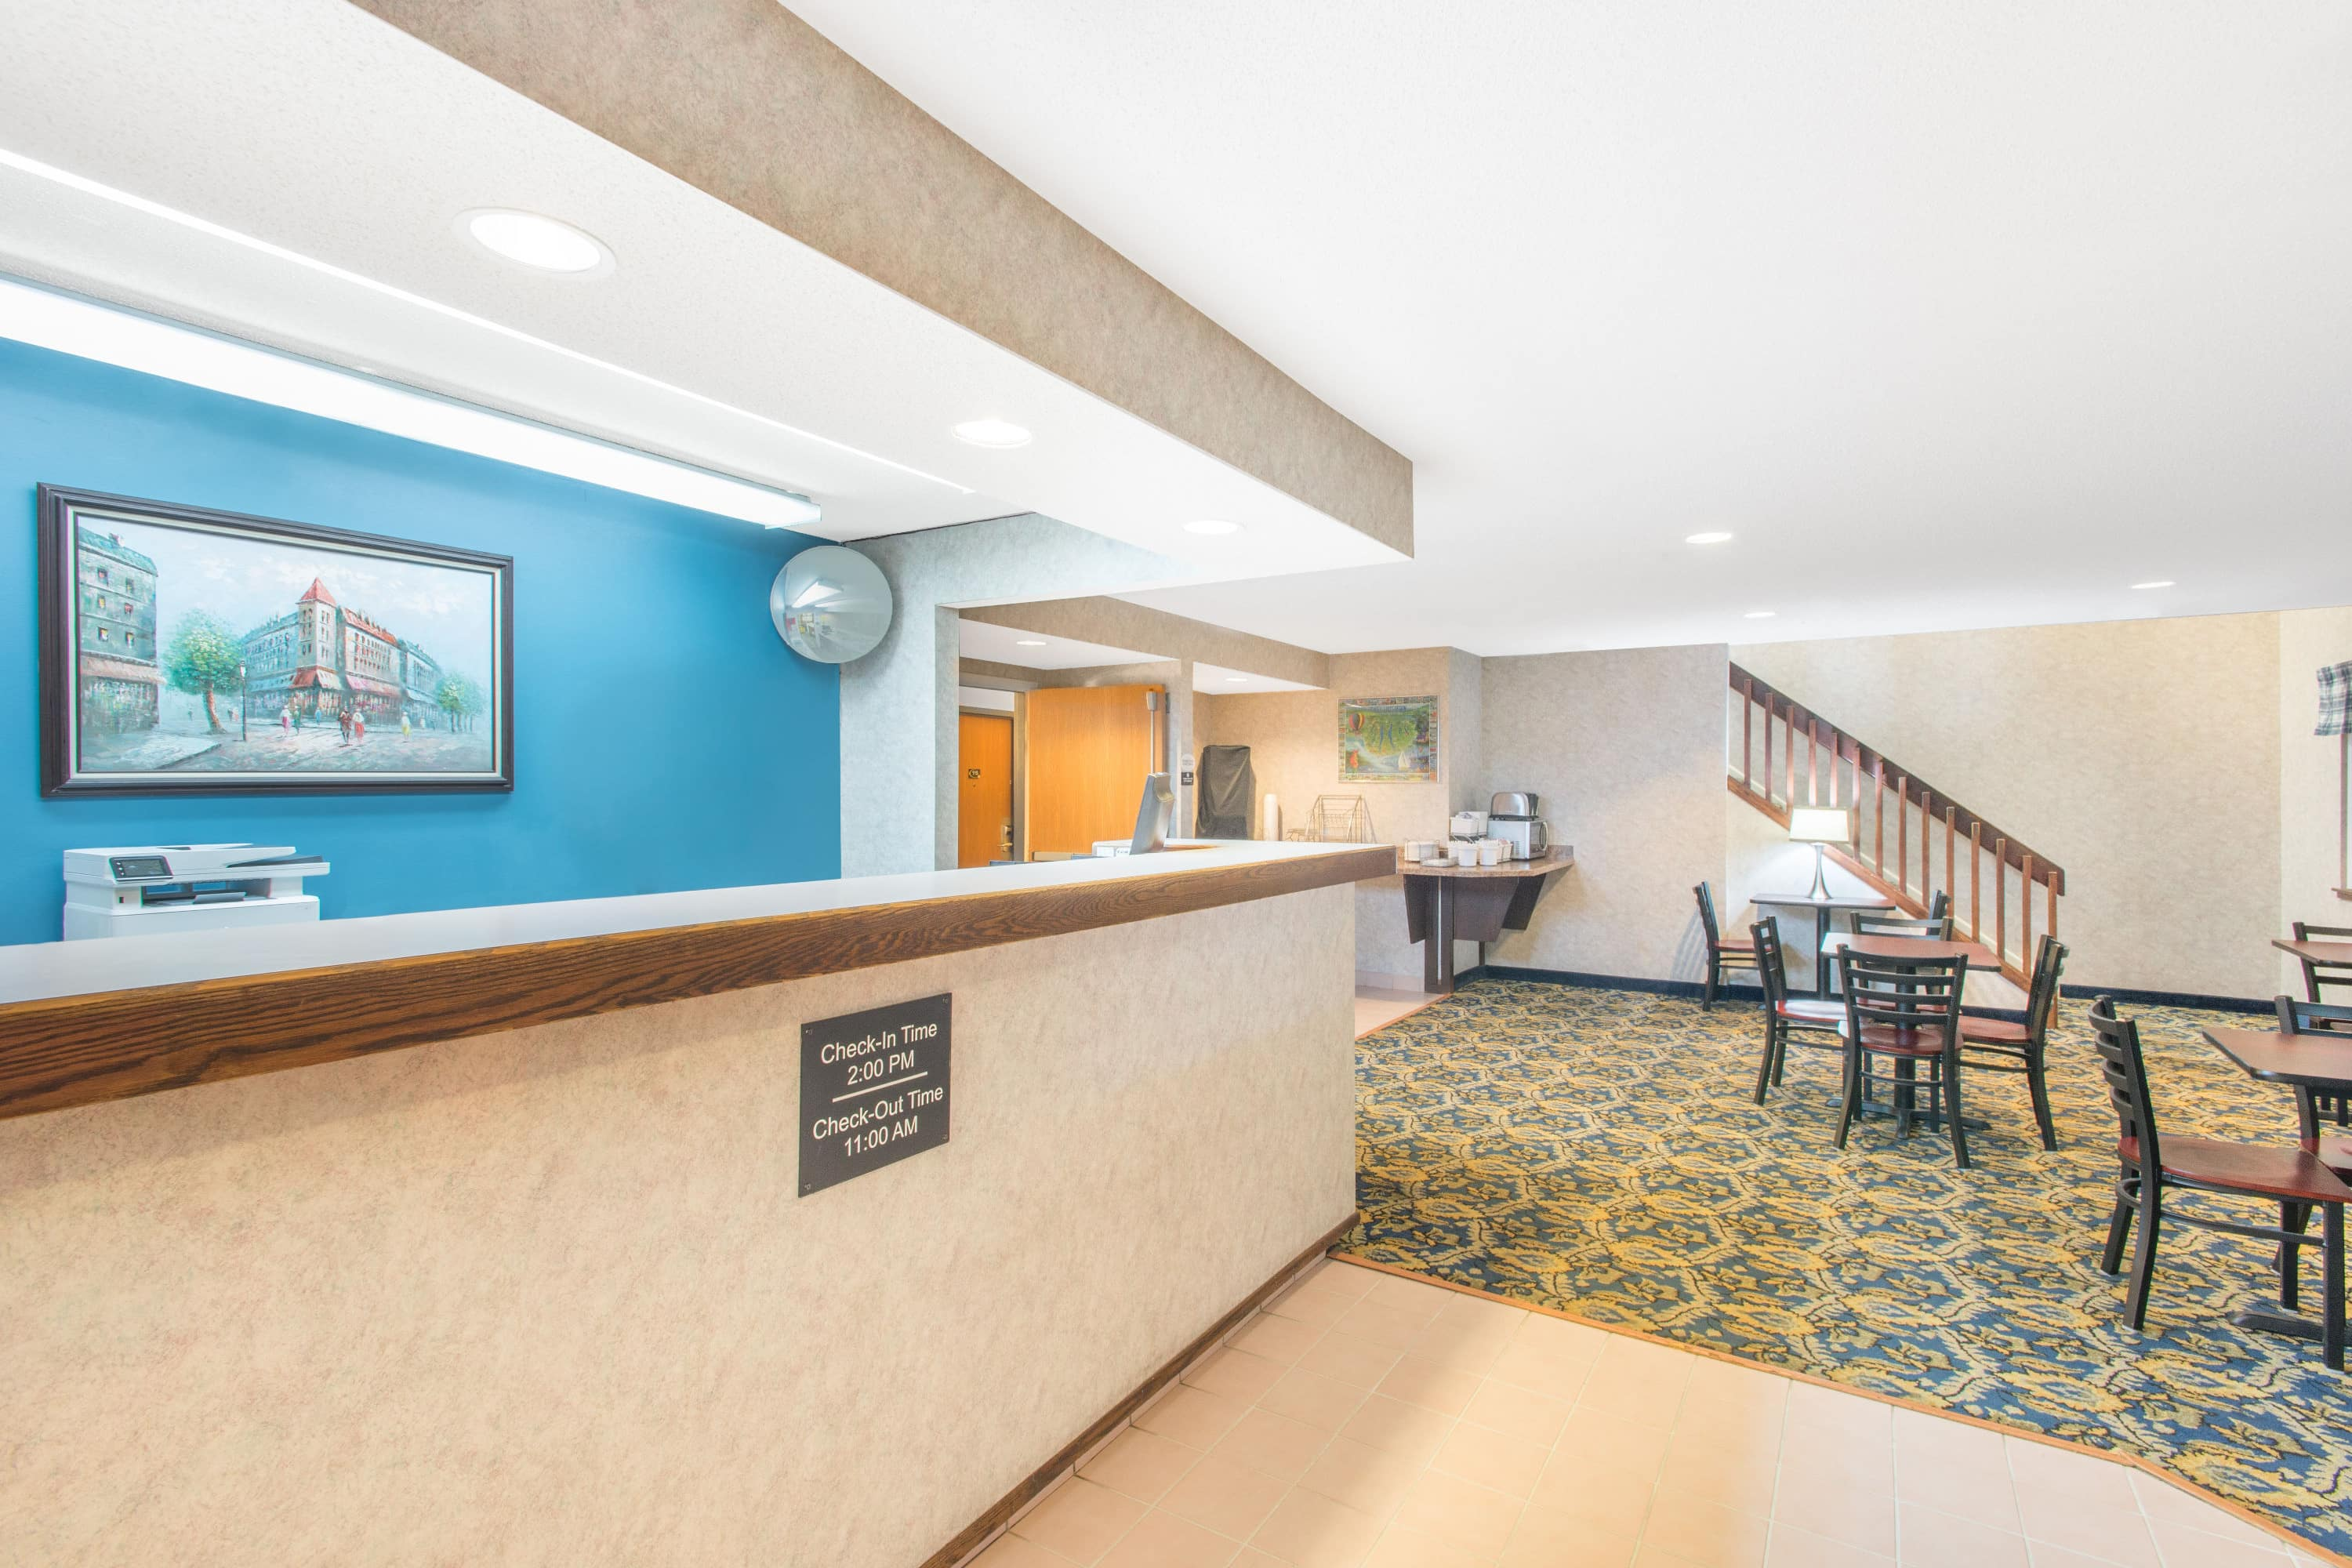 Super 8 by Wyndham Webster/Rochester hotel lobby in Webster, New York